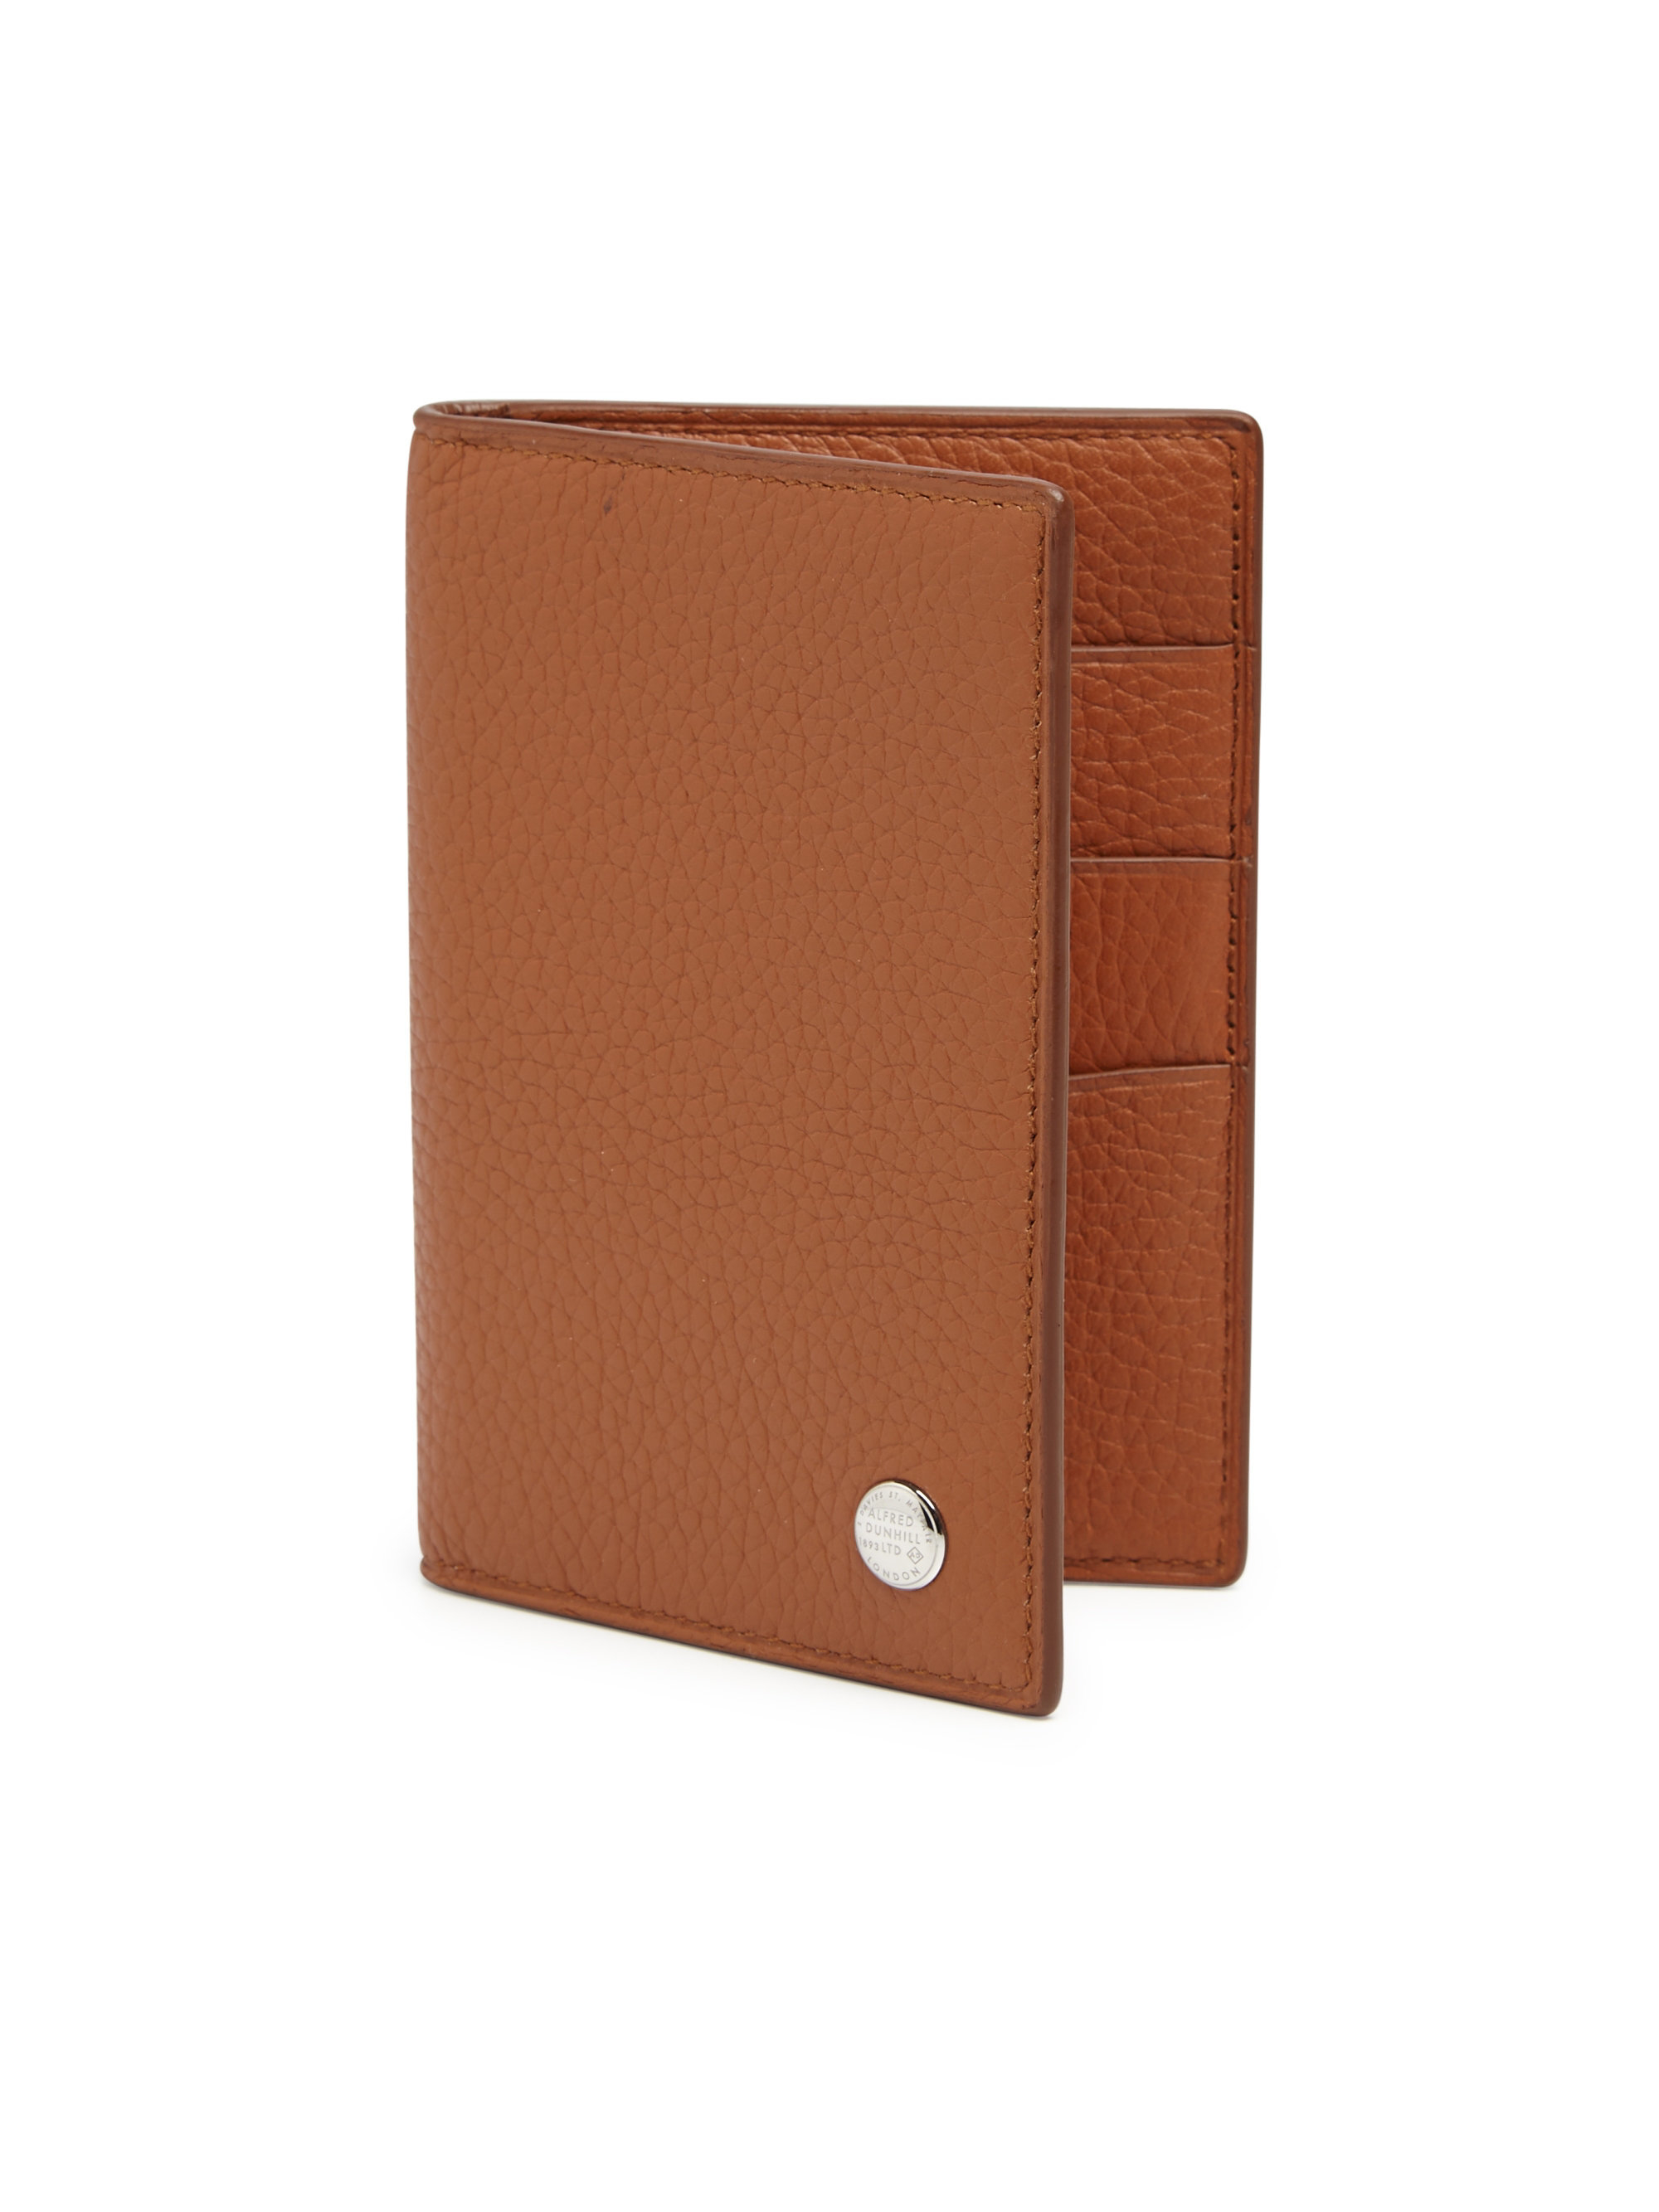 Dunhill Boston Leather Business Card Case in Brown for Men